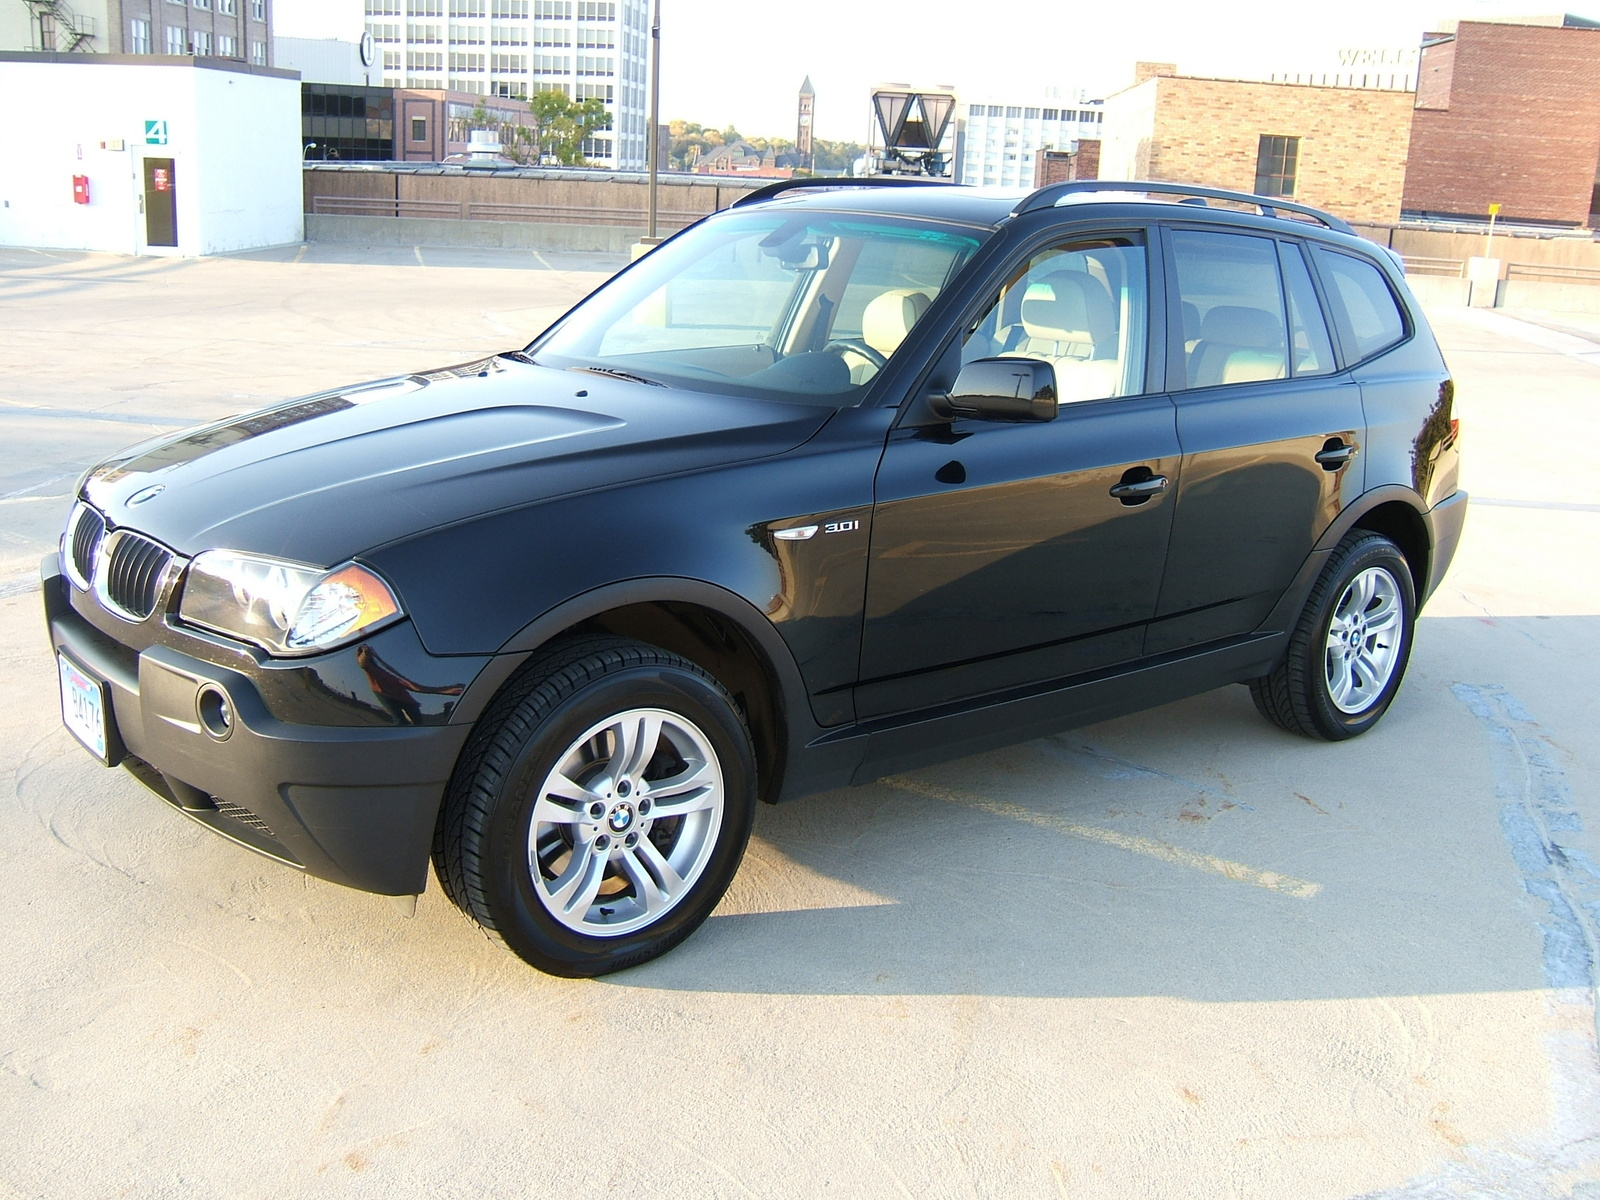 2005 bmw x3 related keywords 2005 bmw x3 long tail keywords keywordsking. Black Bedroom Furniture Sets. Home Design Ideas